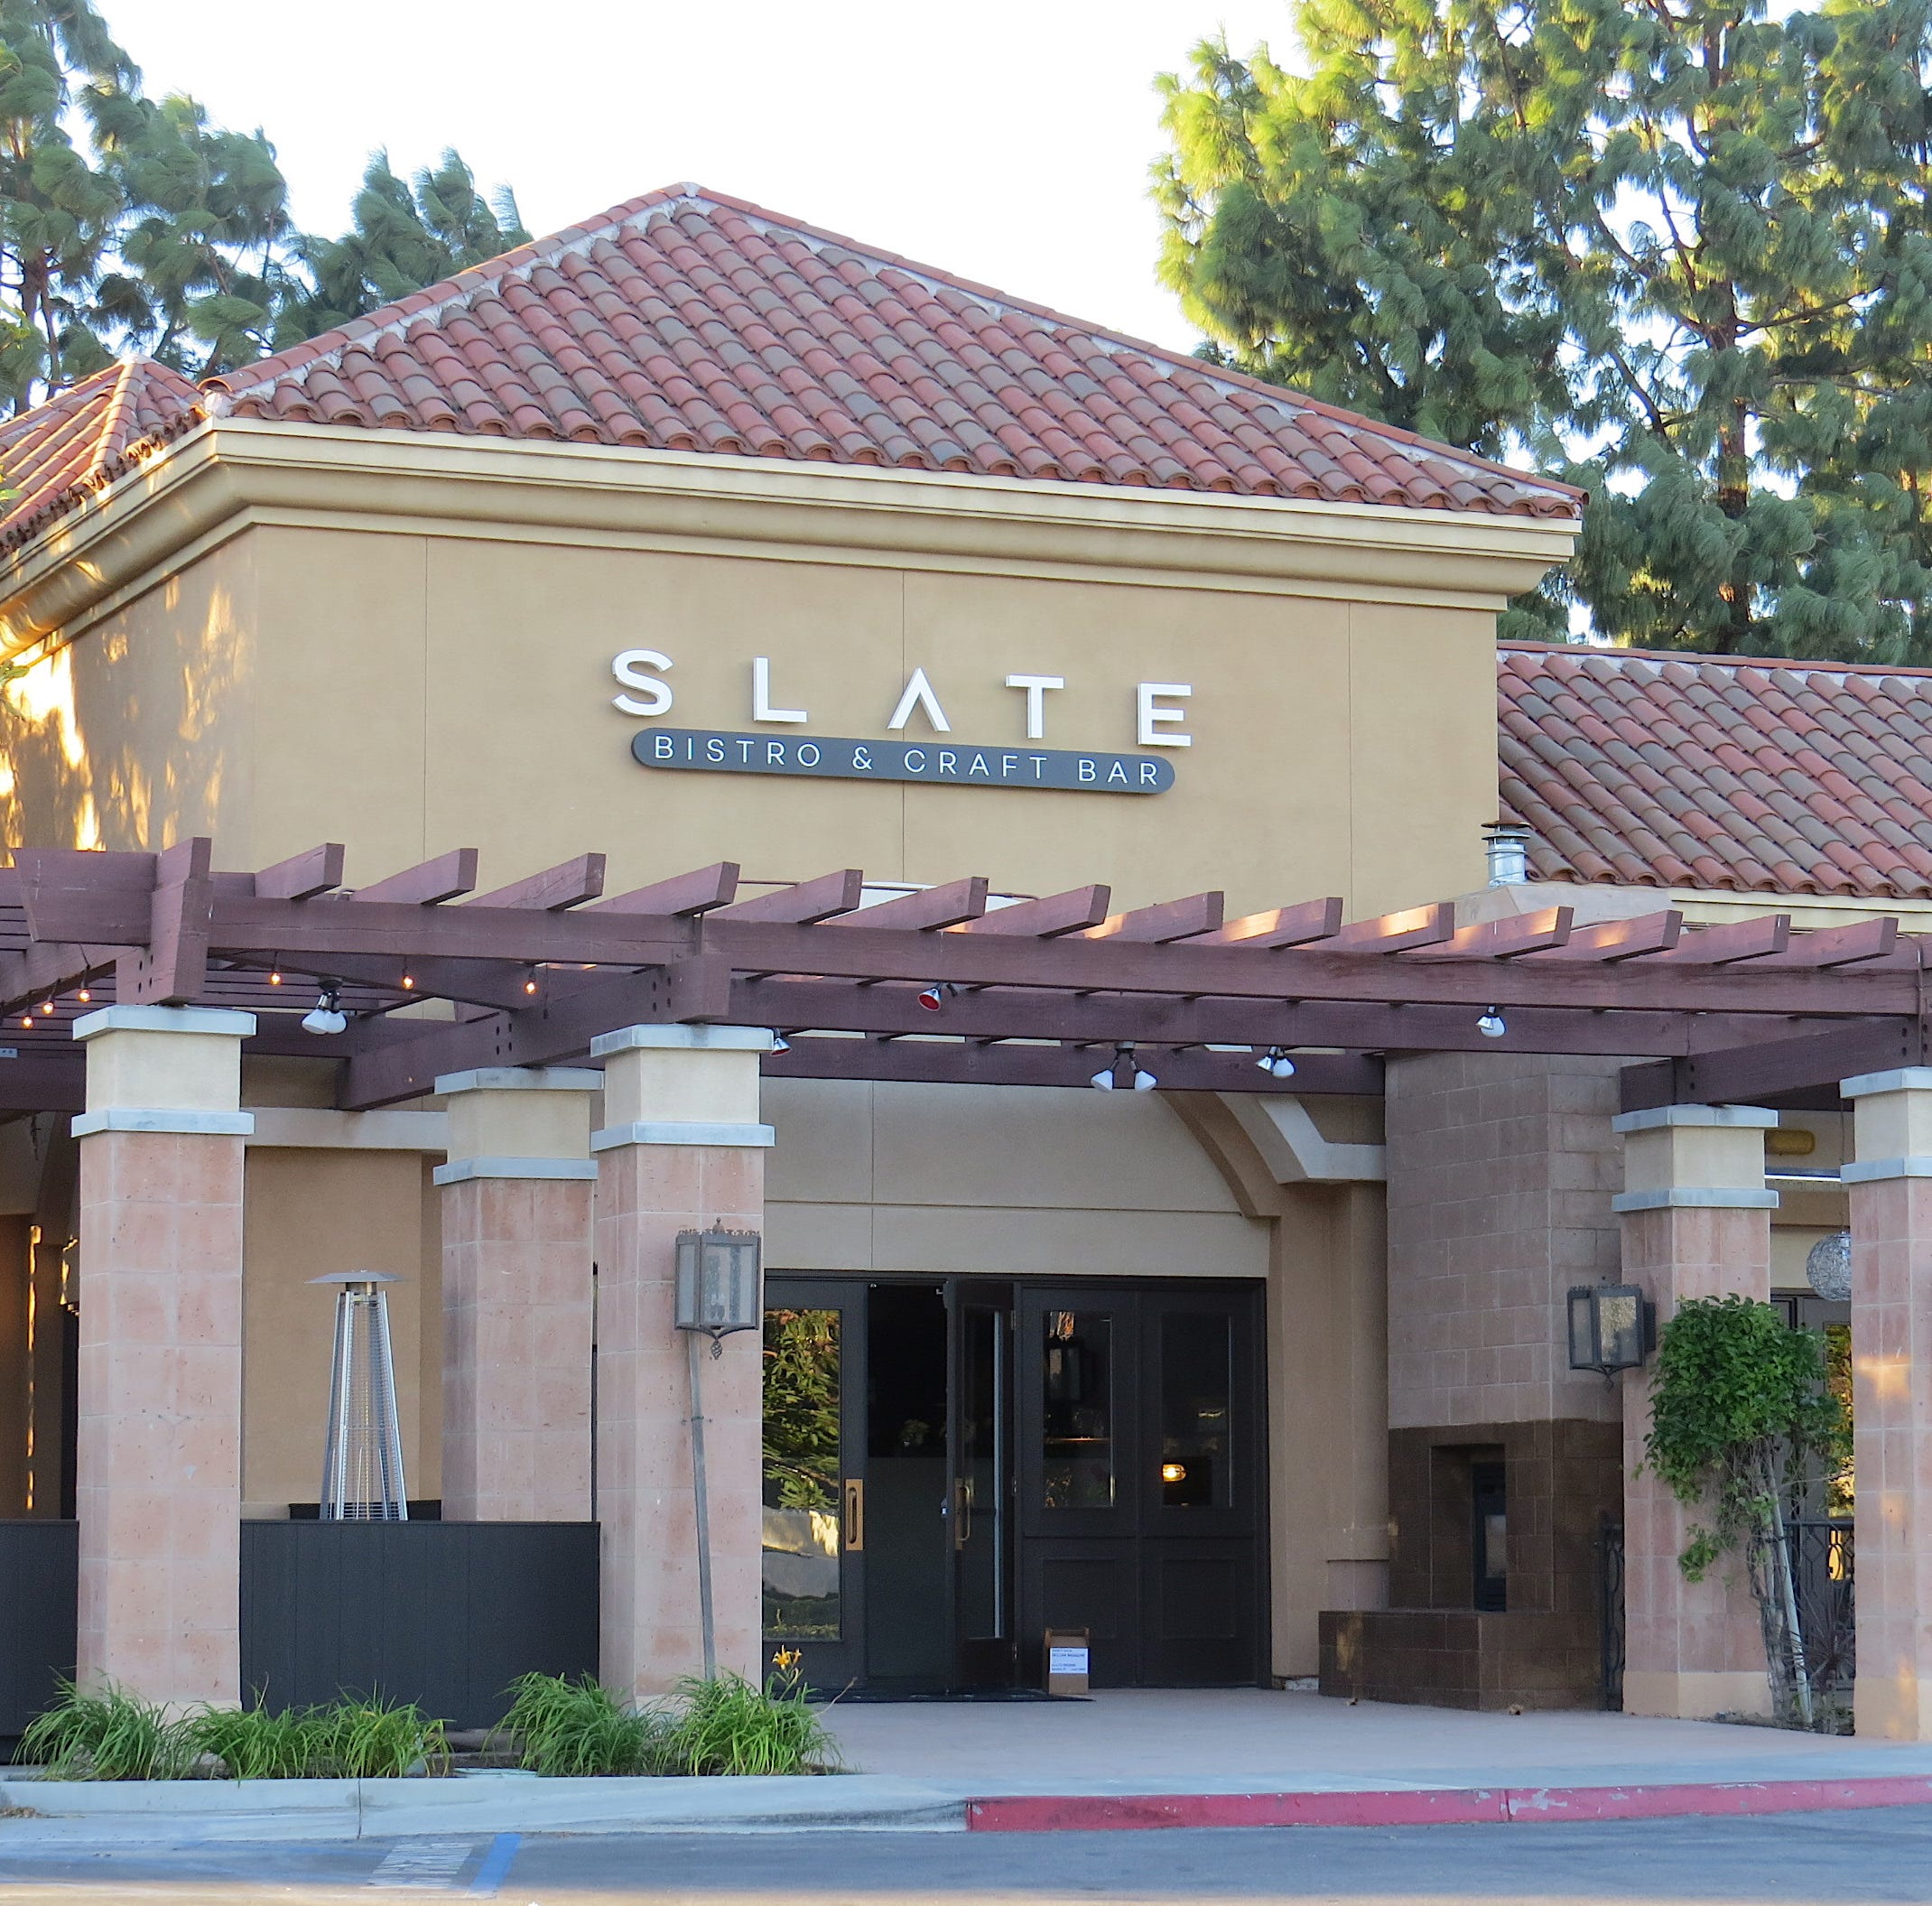 Open and Shut: Slate Bistro unveils new decor, menu at familiar Camarillo address